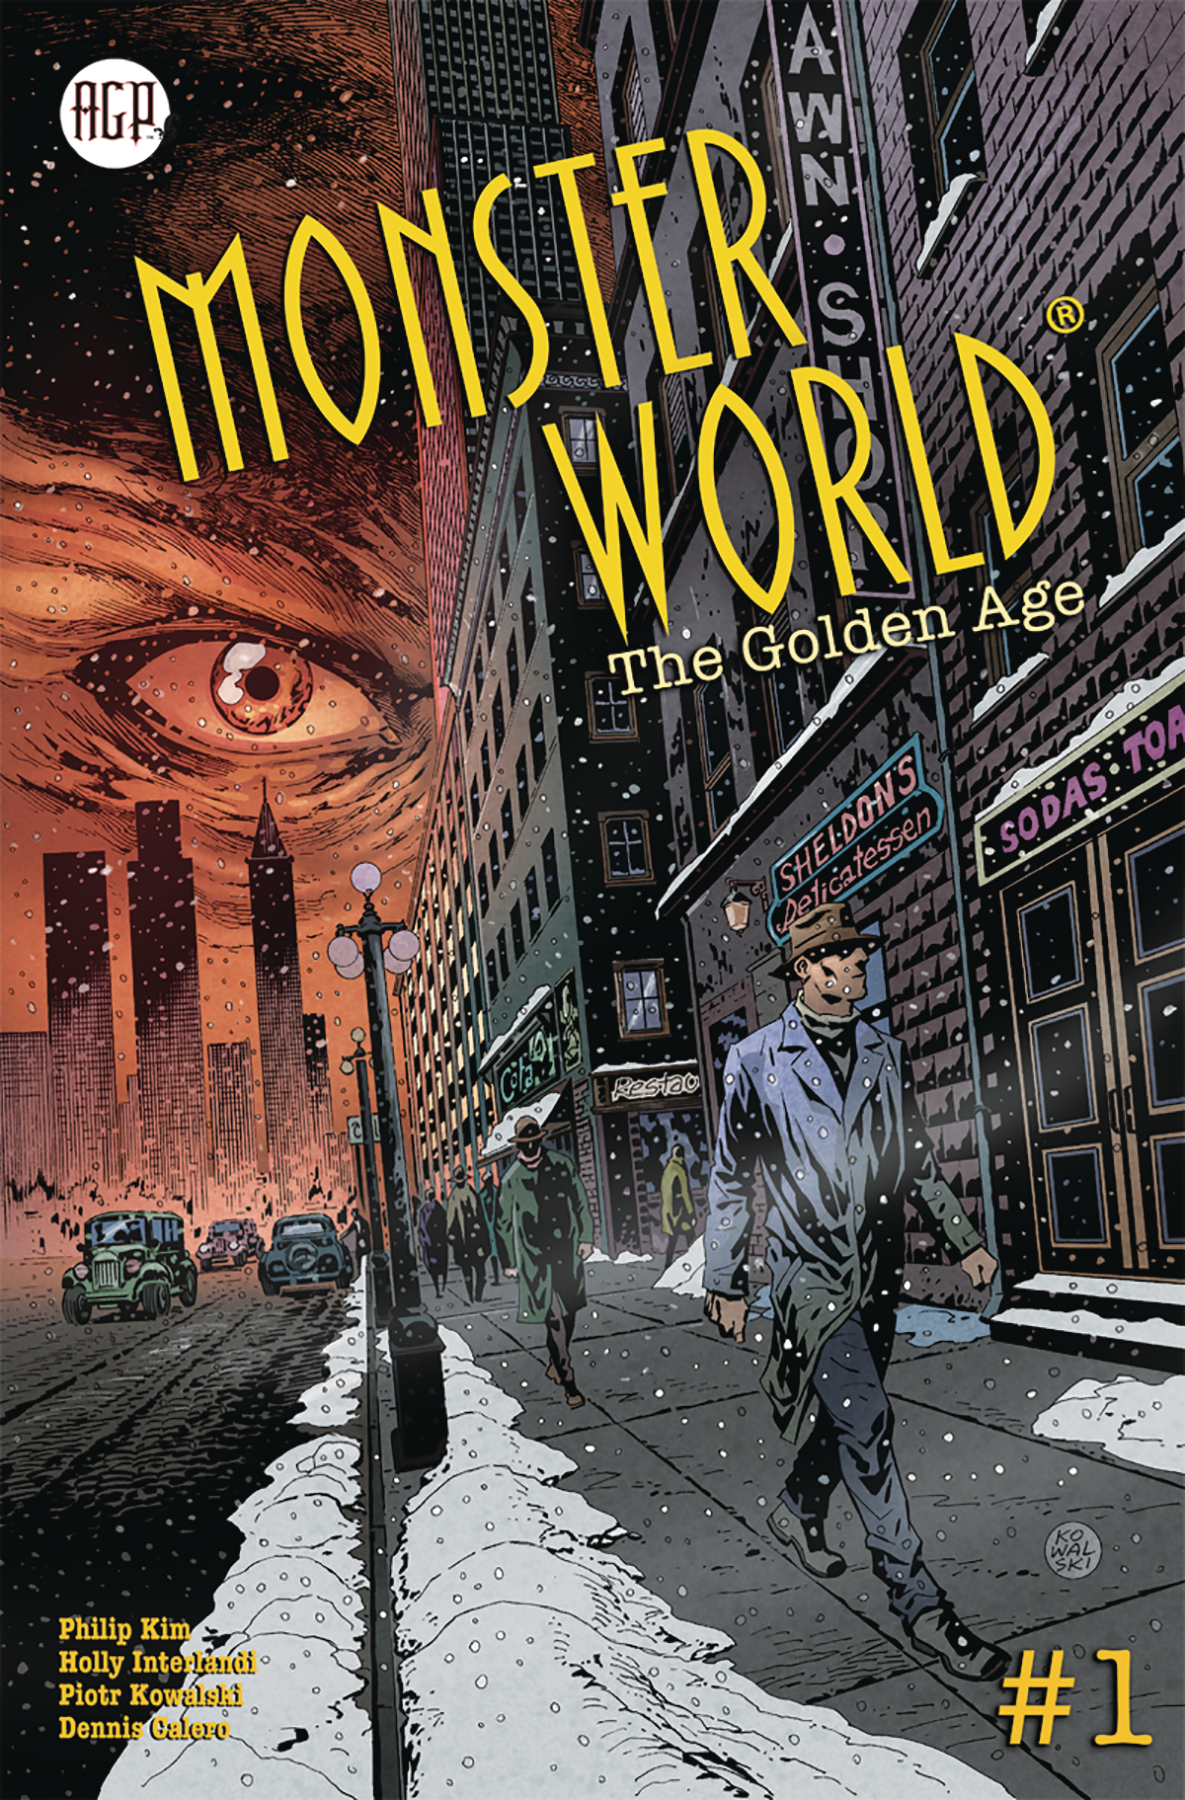 MONSTER WORLD GOLDEN AGE #1 (OF 6) CVR A KOWALSKI